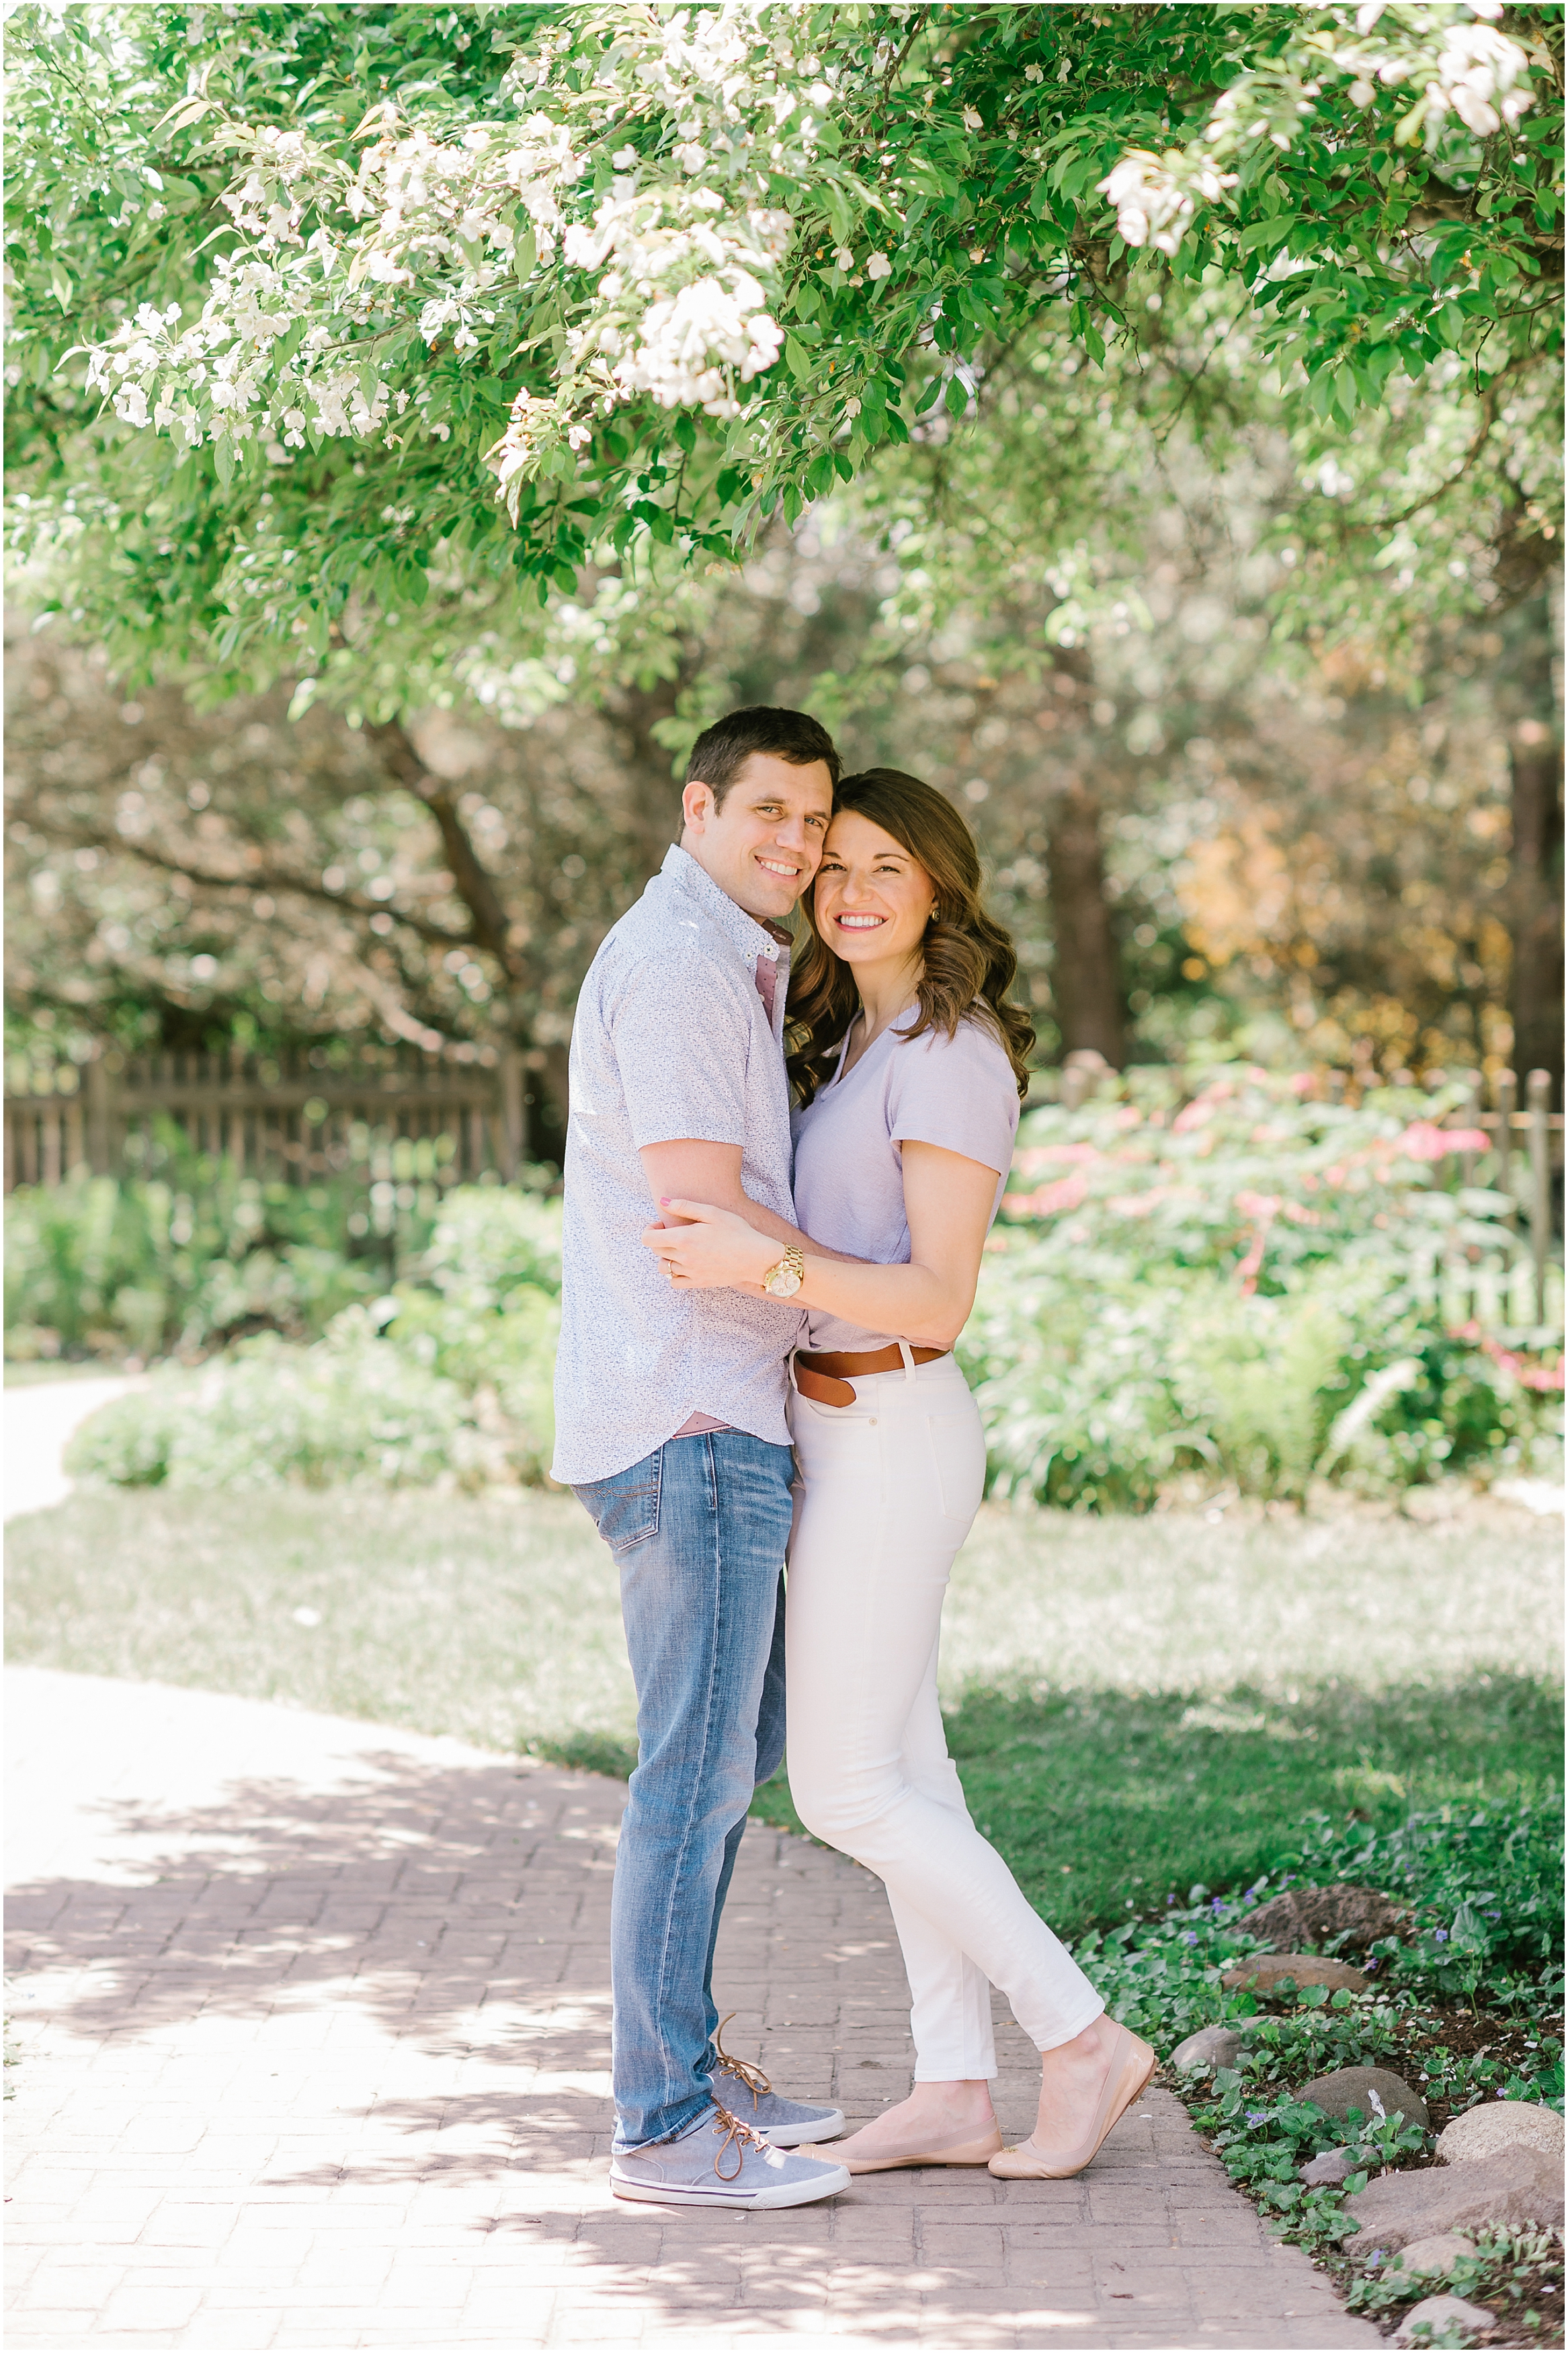 Rebecca Shehorn Photography Indianapolis Wedding Photographer Kathryn and Zach Fort Wayne Engagement Session_0011.jpg